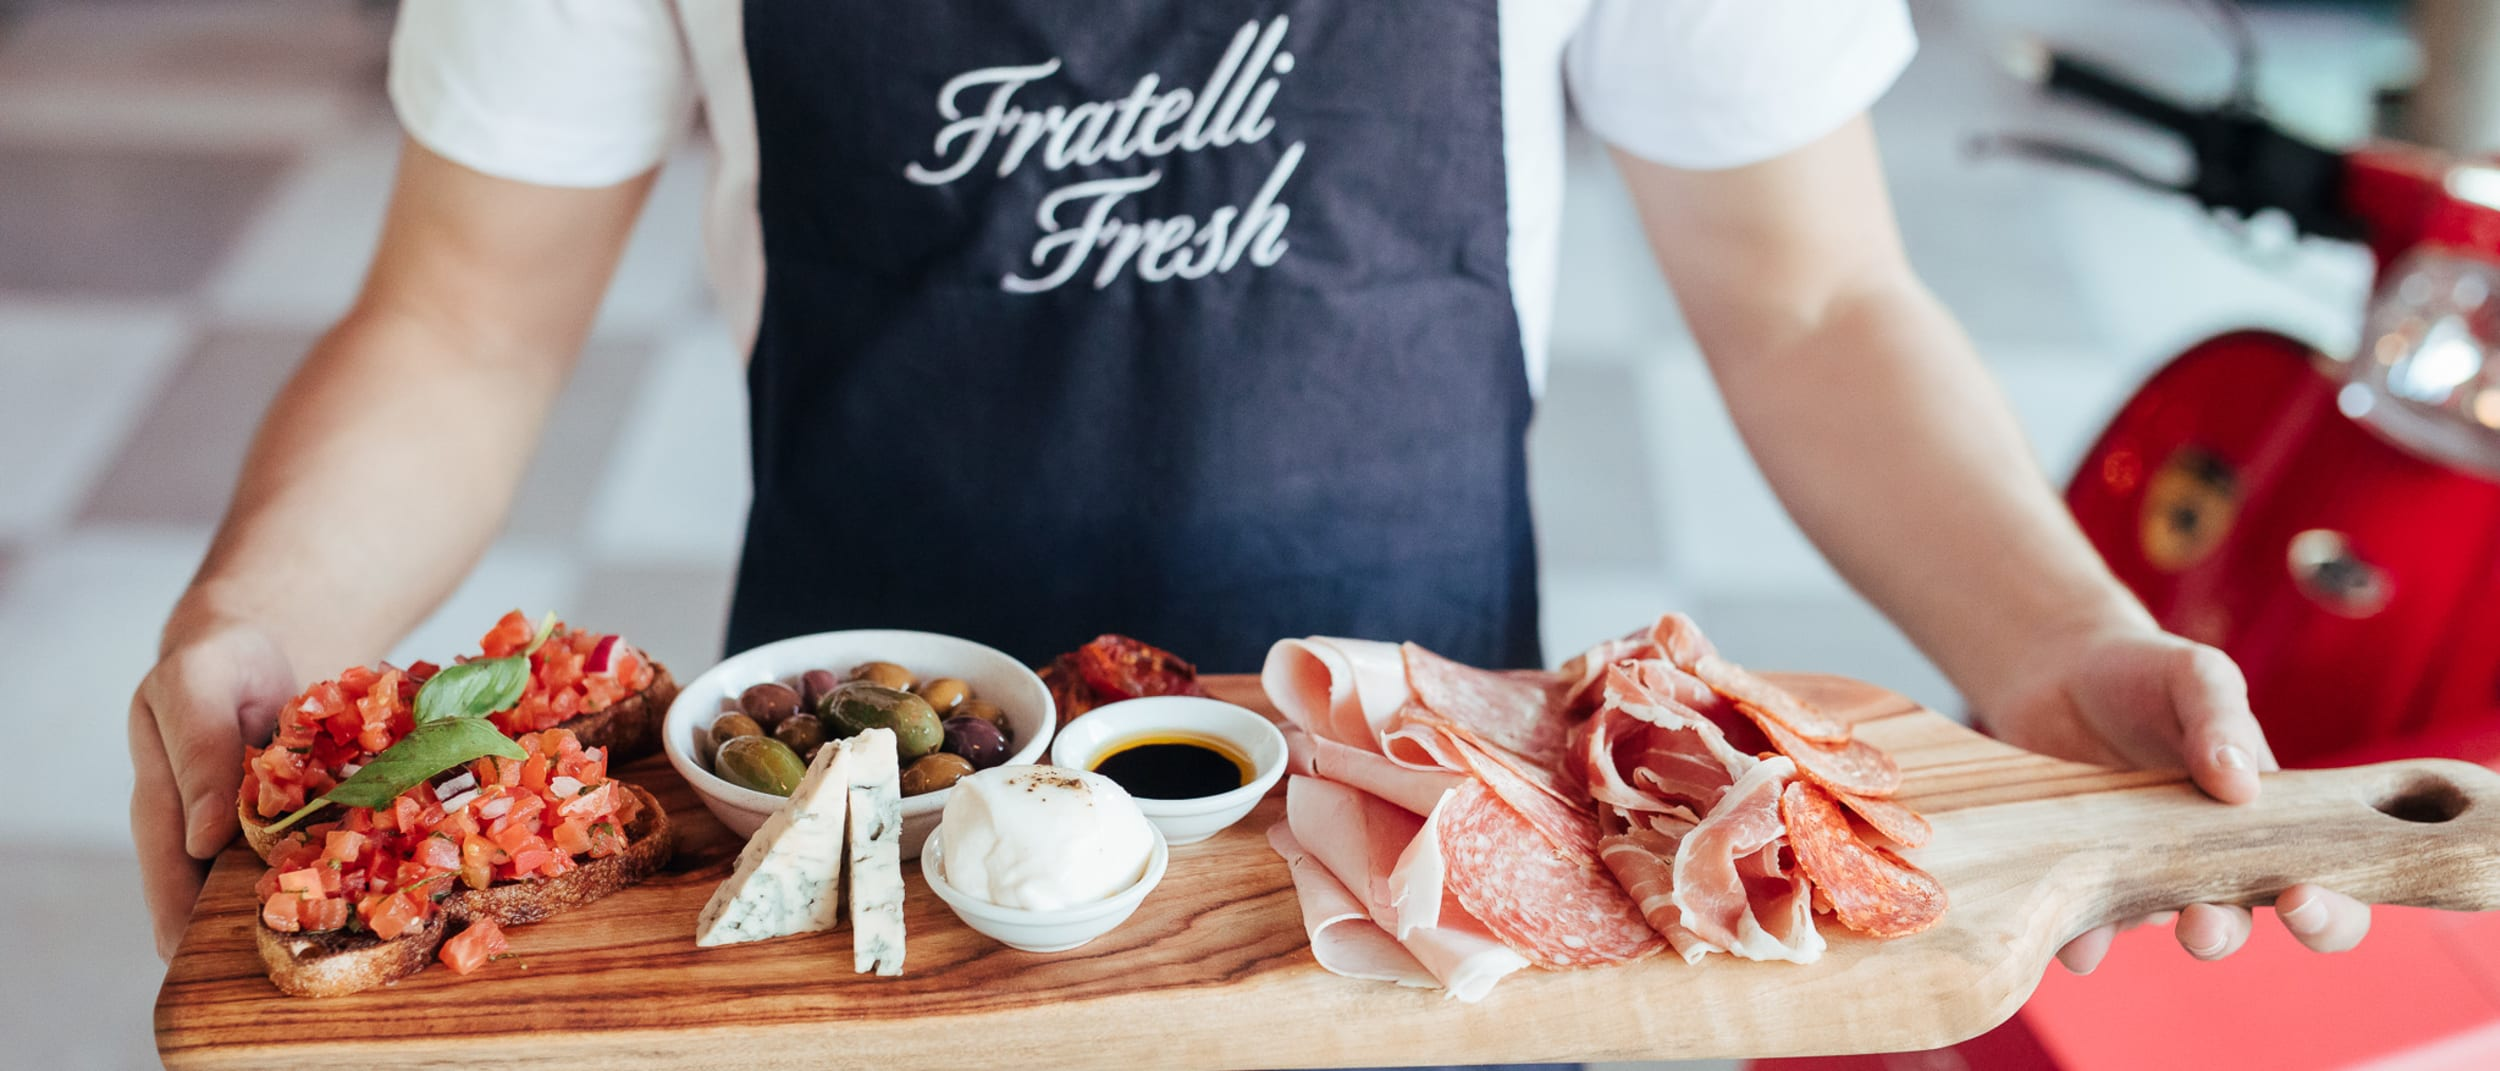 Fratelli Friends exclusive gifts